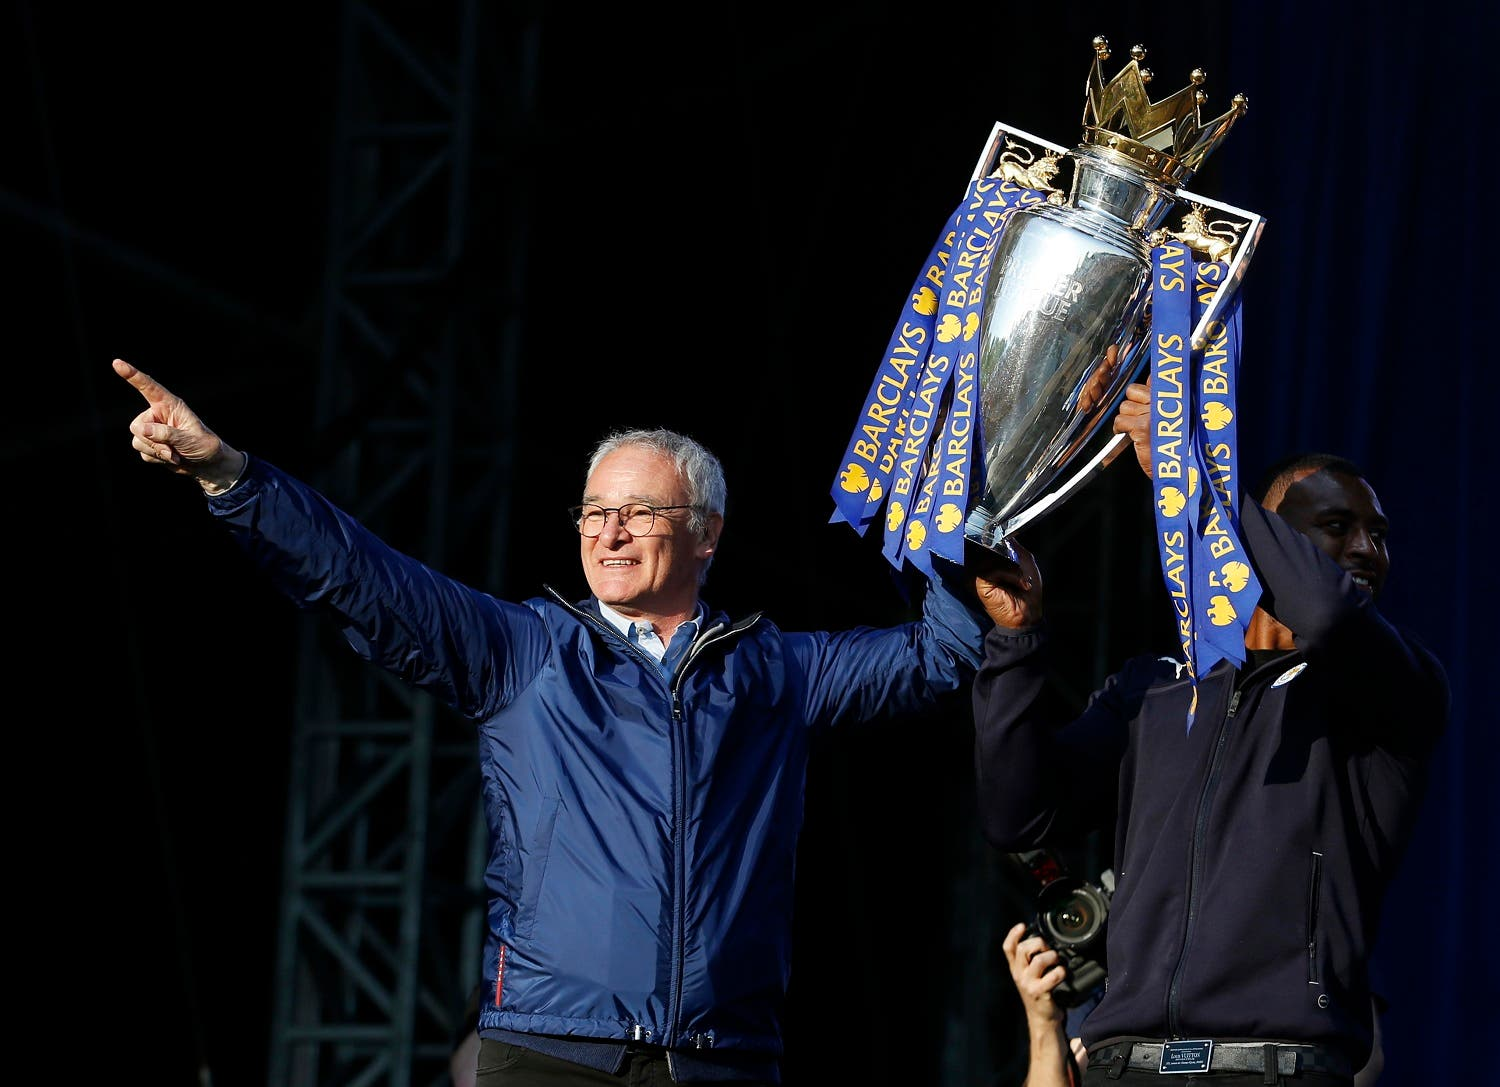 Leicester City manager Claudio Ranieri and Wes Morgan on the stage with the trophy during the parade. (Action Images via Reuters)